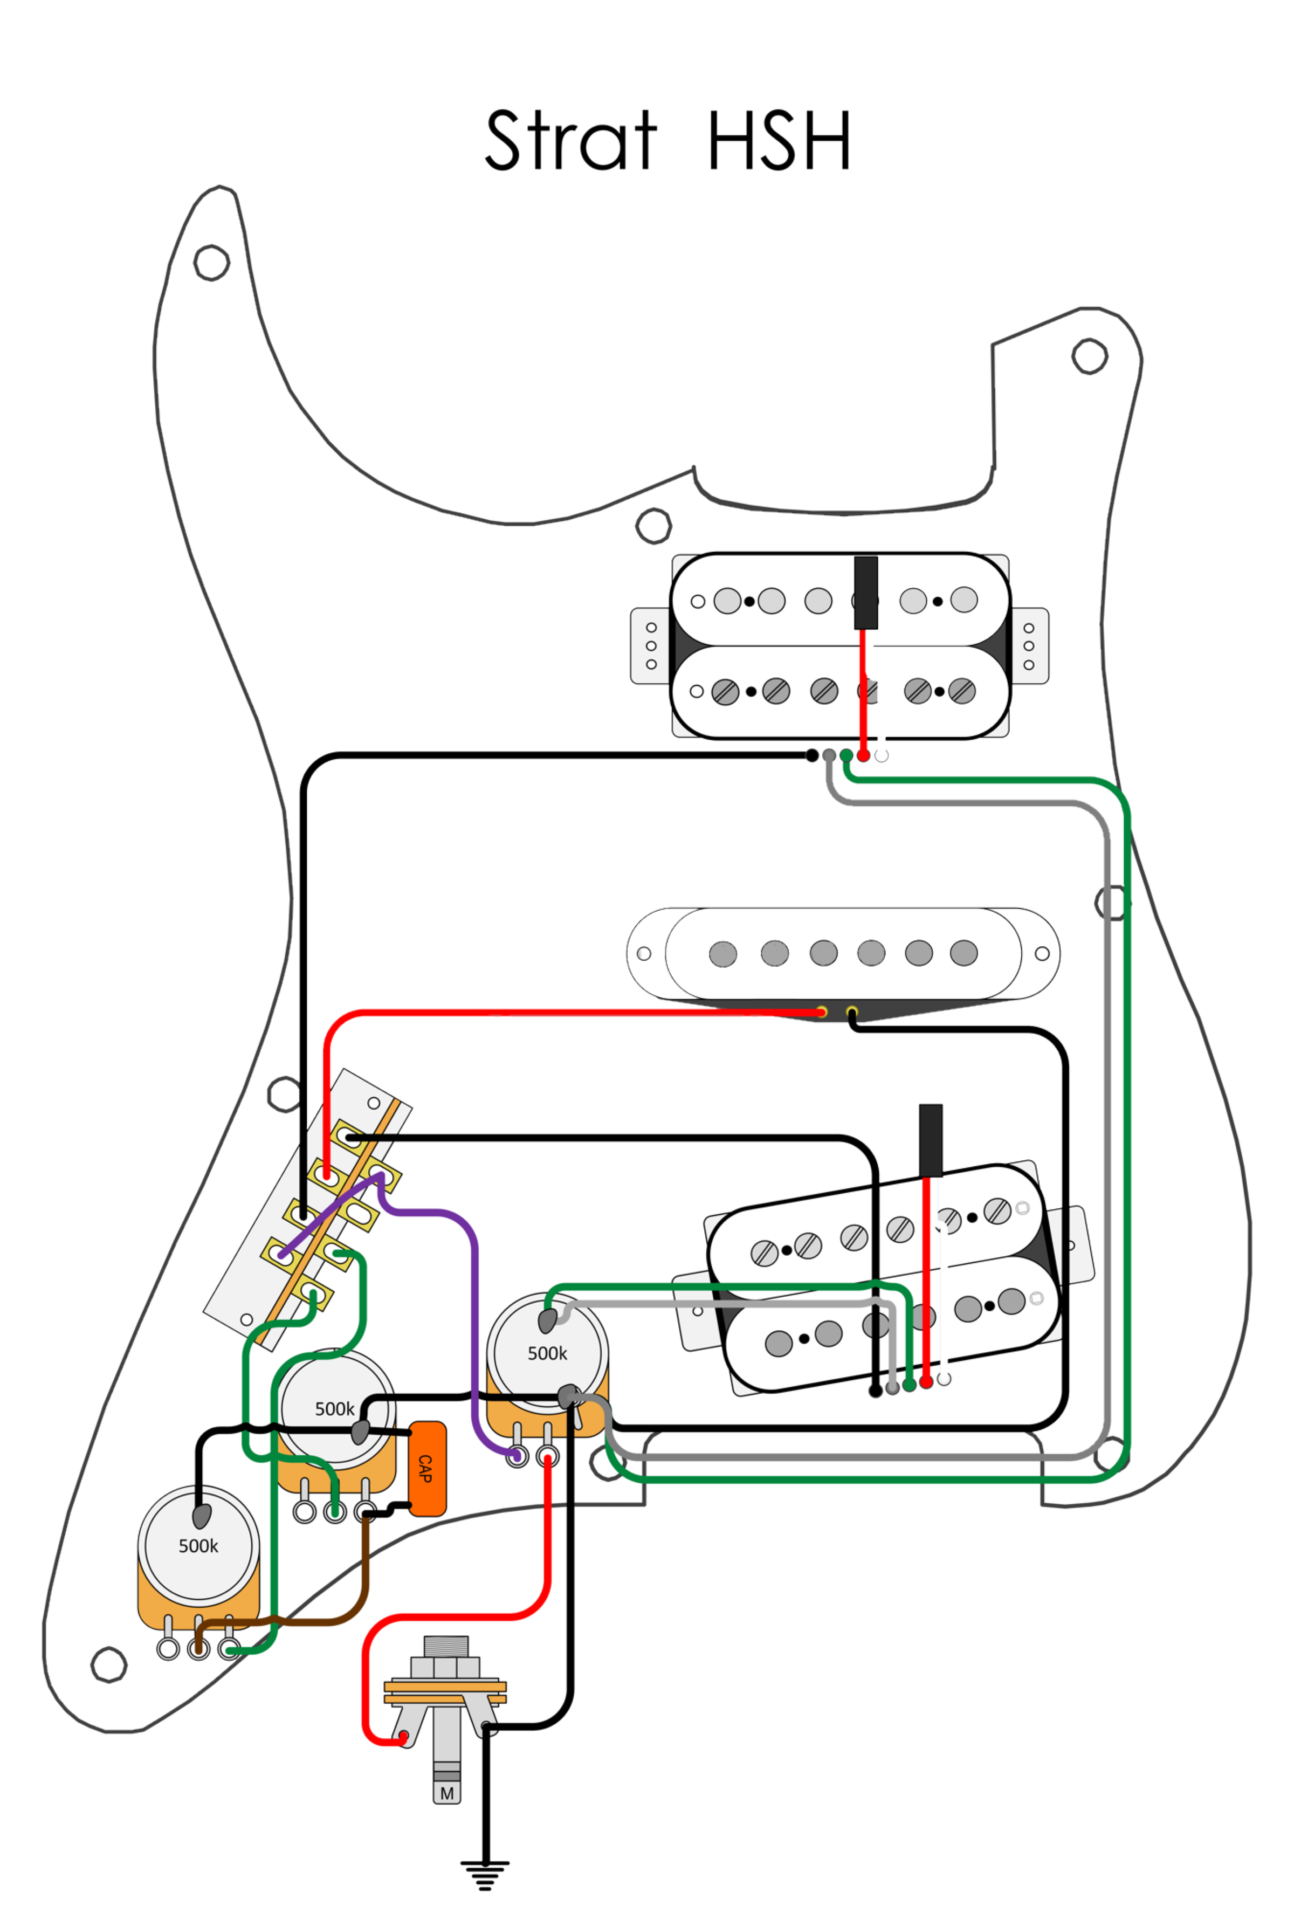 Wiring Diagrams - Blackwood Guitarworks | Electric Guitar Hsh Wiring Diagram |  | Blackwood Guitarworks